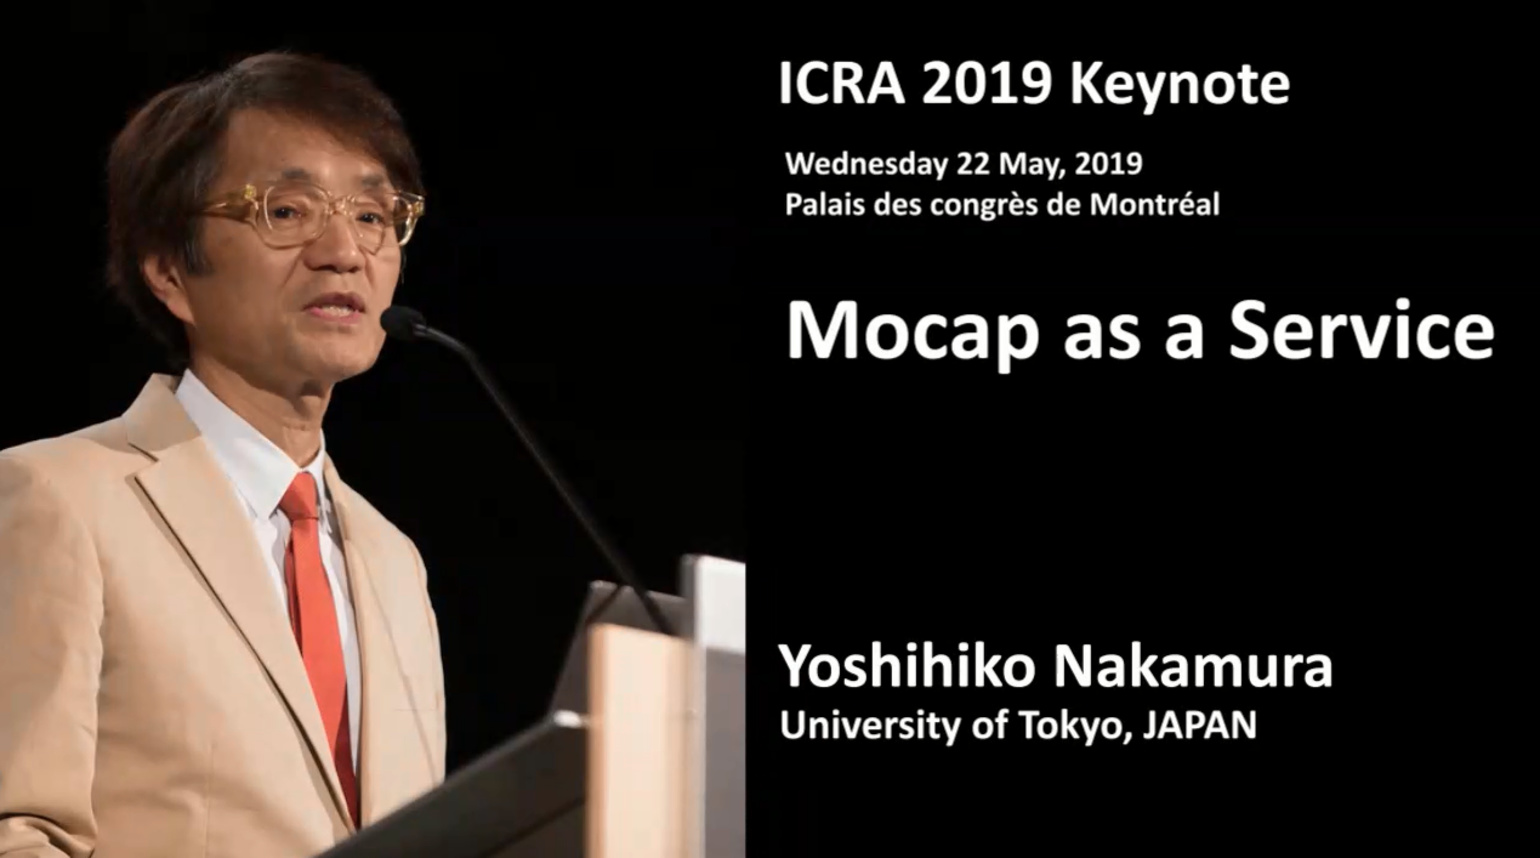 2019 ICRA Keynote- Mocap as a Service